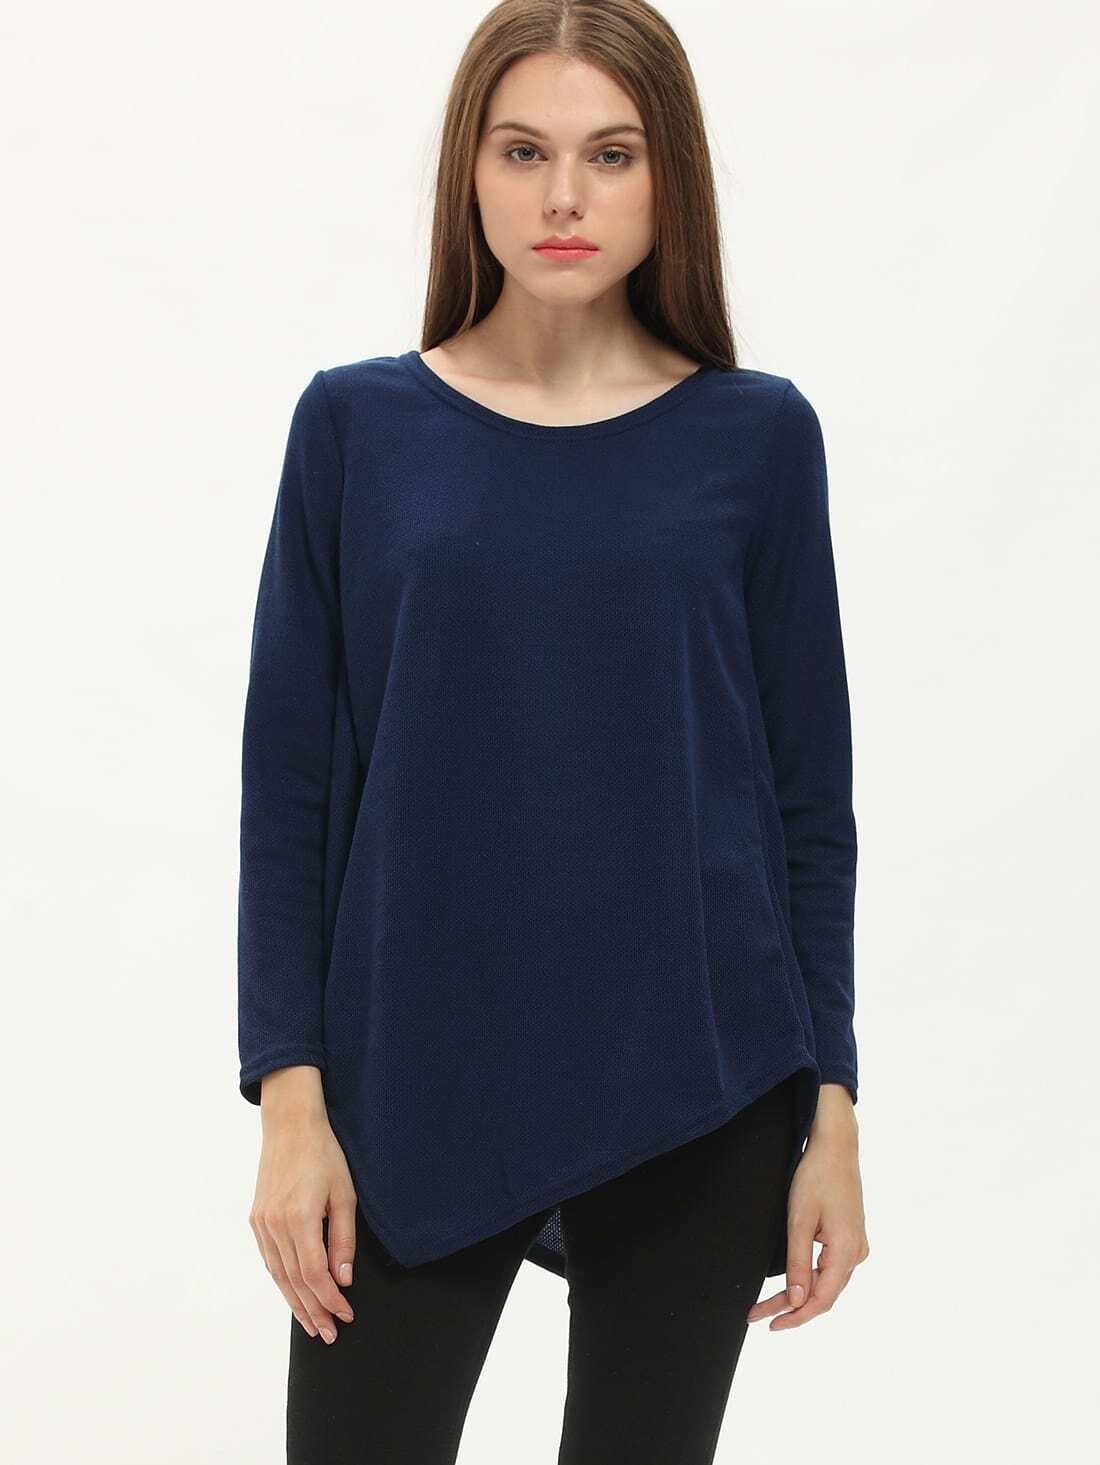 Navy Long Sleeve Asymmetrical T-Shirt